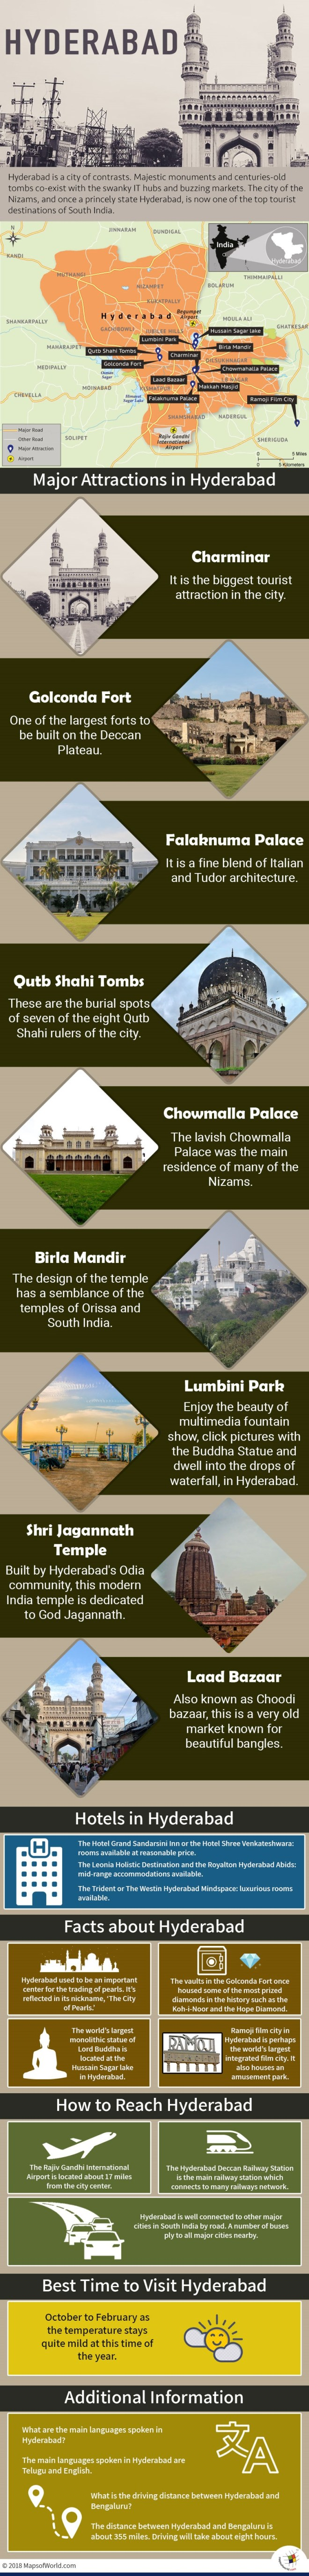 Infographic Depicting Hyderabad Tourist Attractions